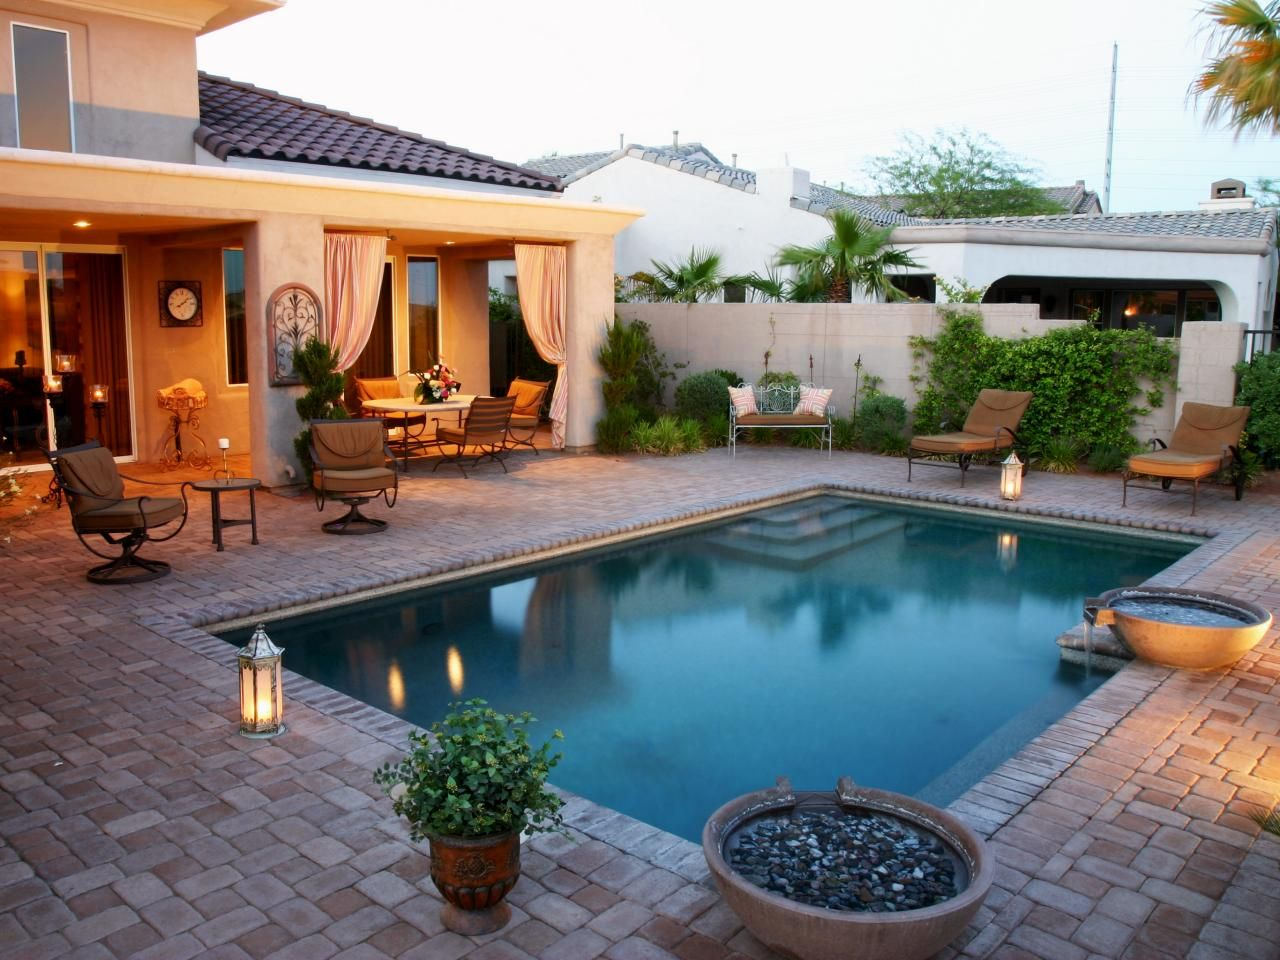 Small Tumbled Pavers Surround The Pool And Extend Throughout Patio Area To Give This